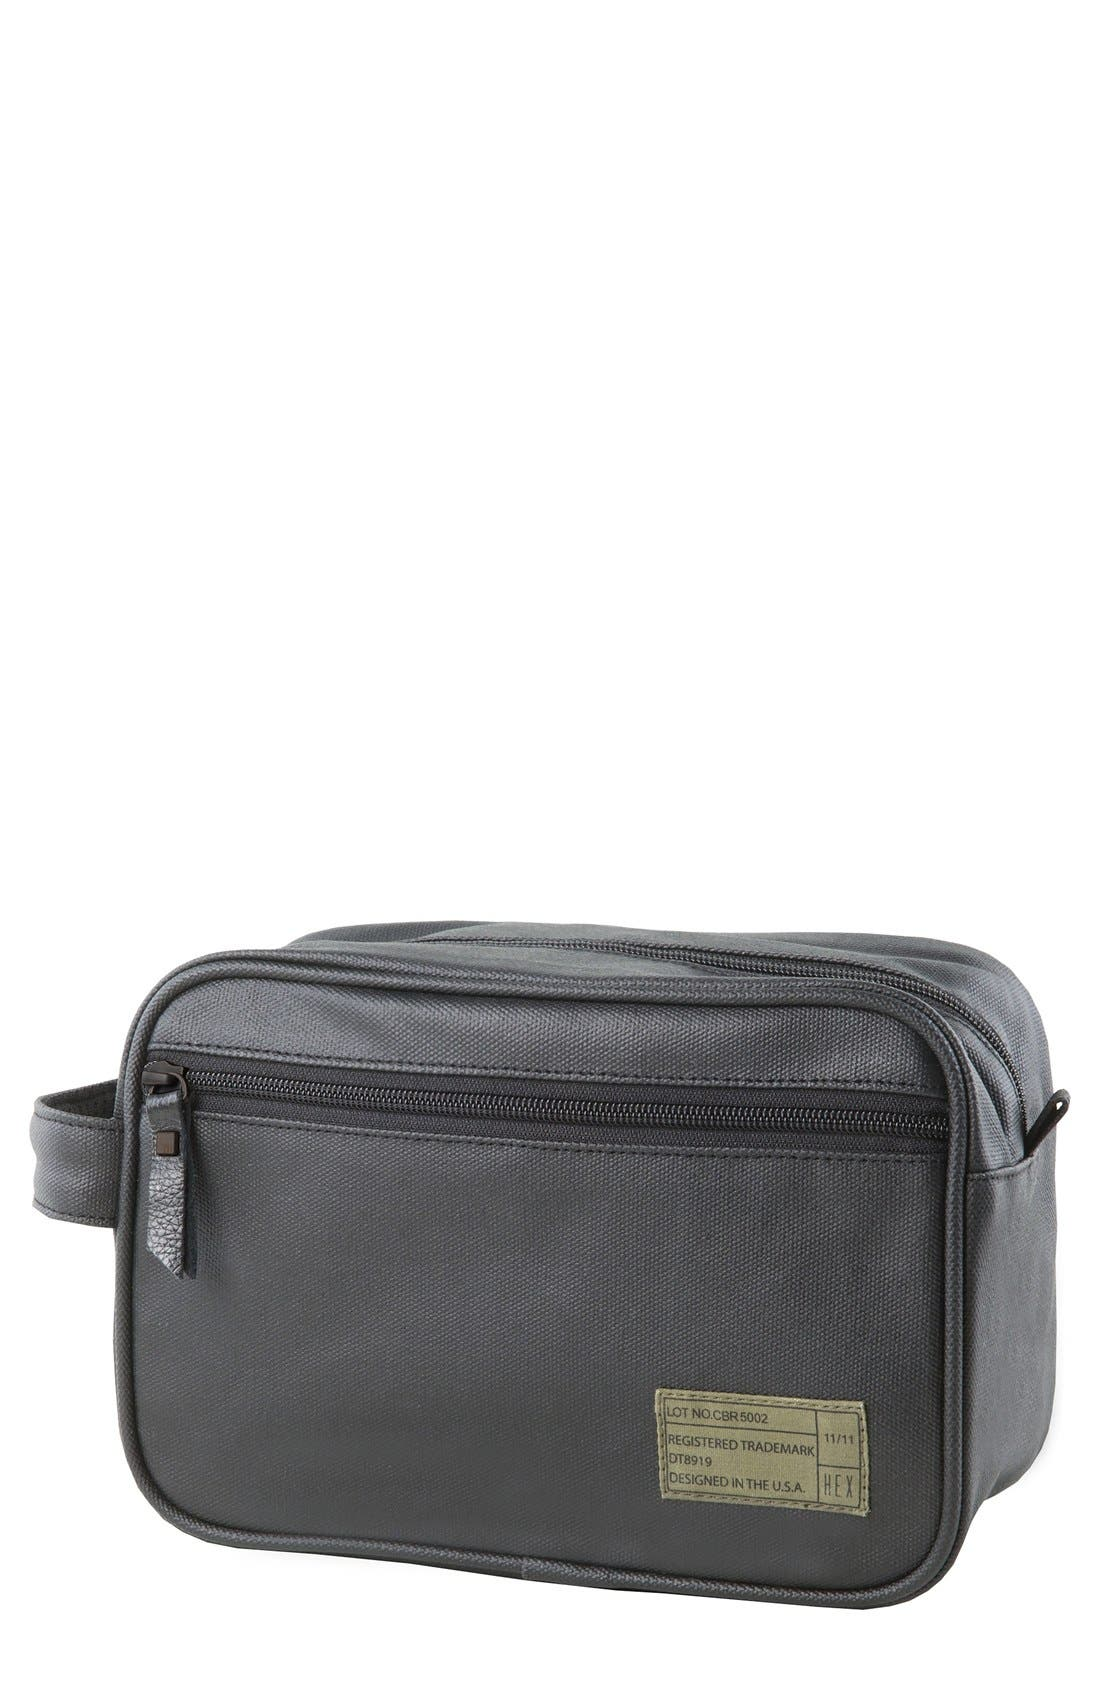 HEX Coated Canvas Travel Kit